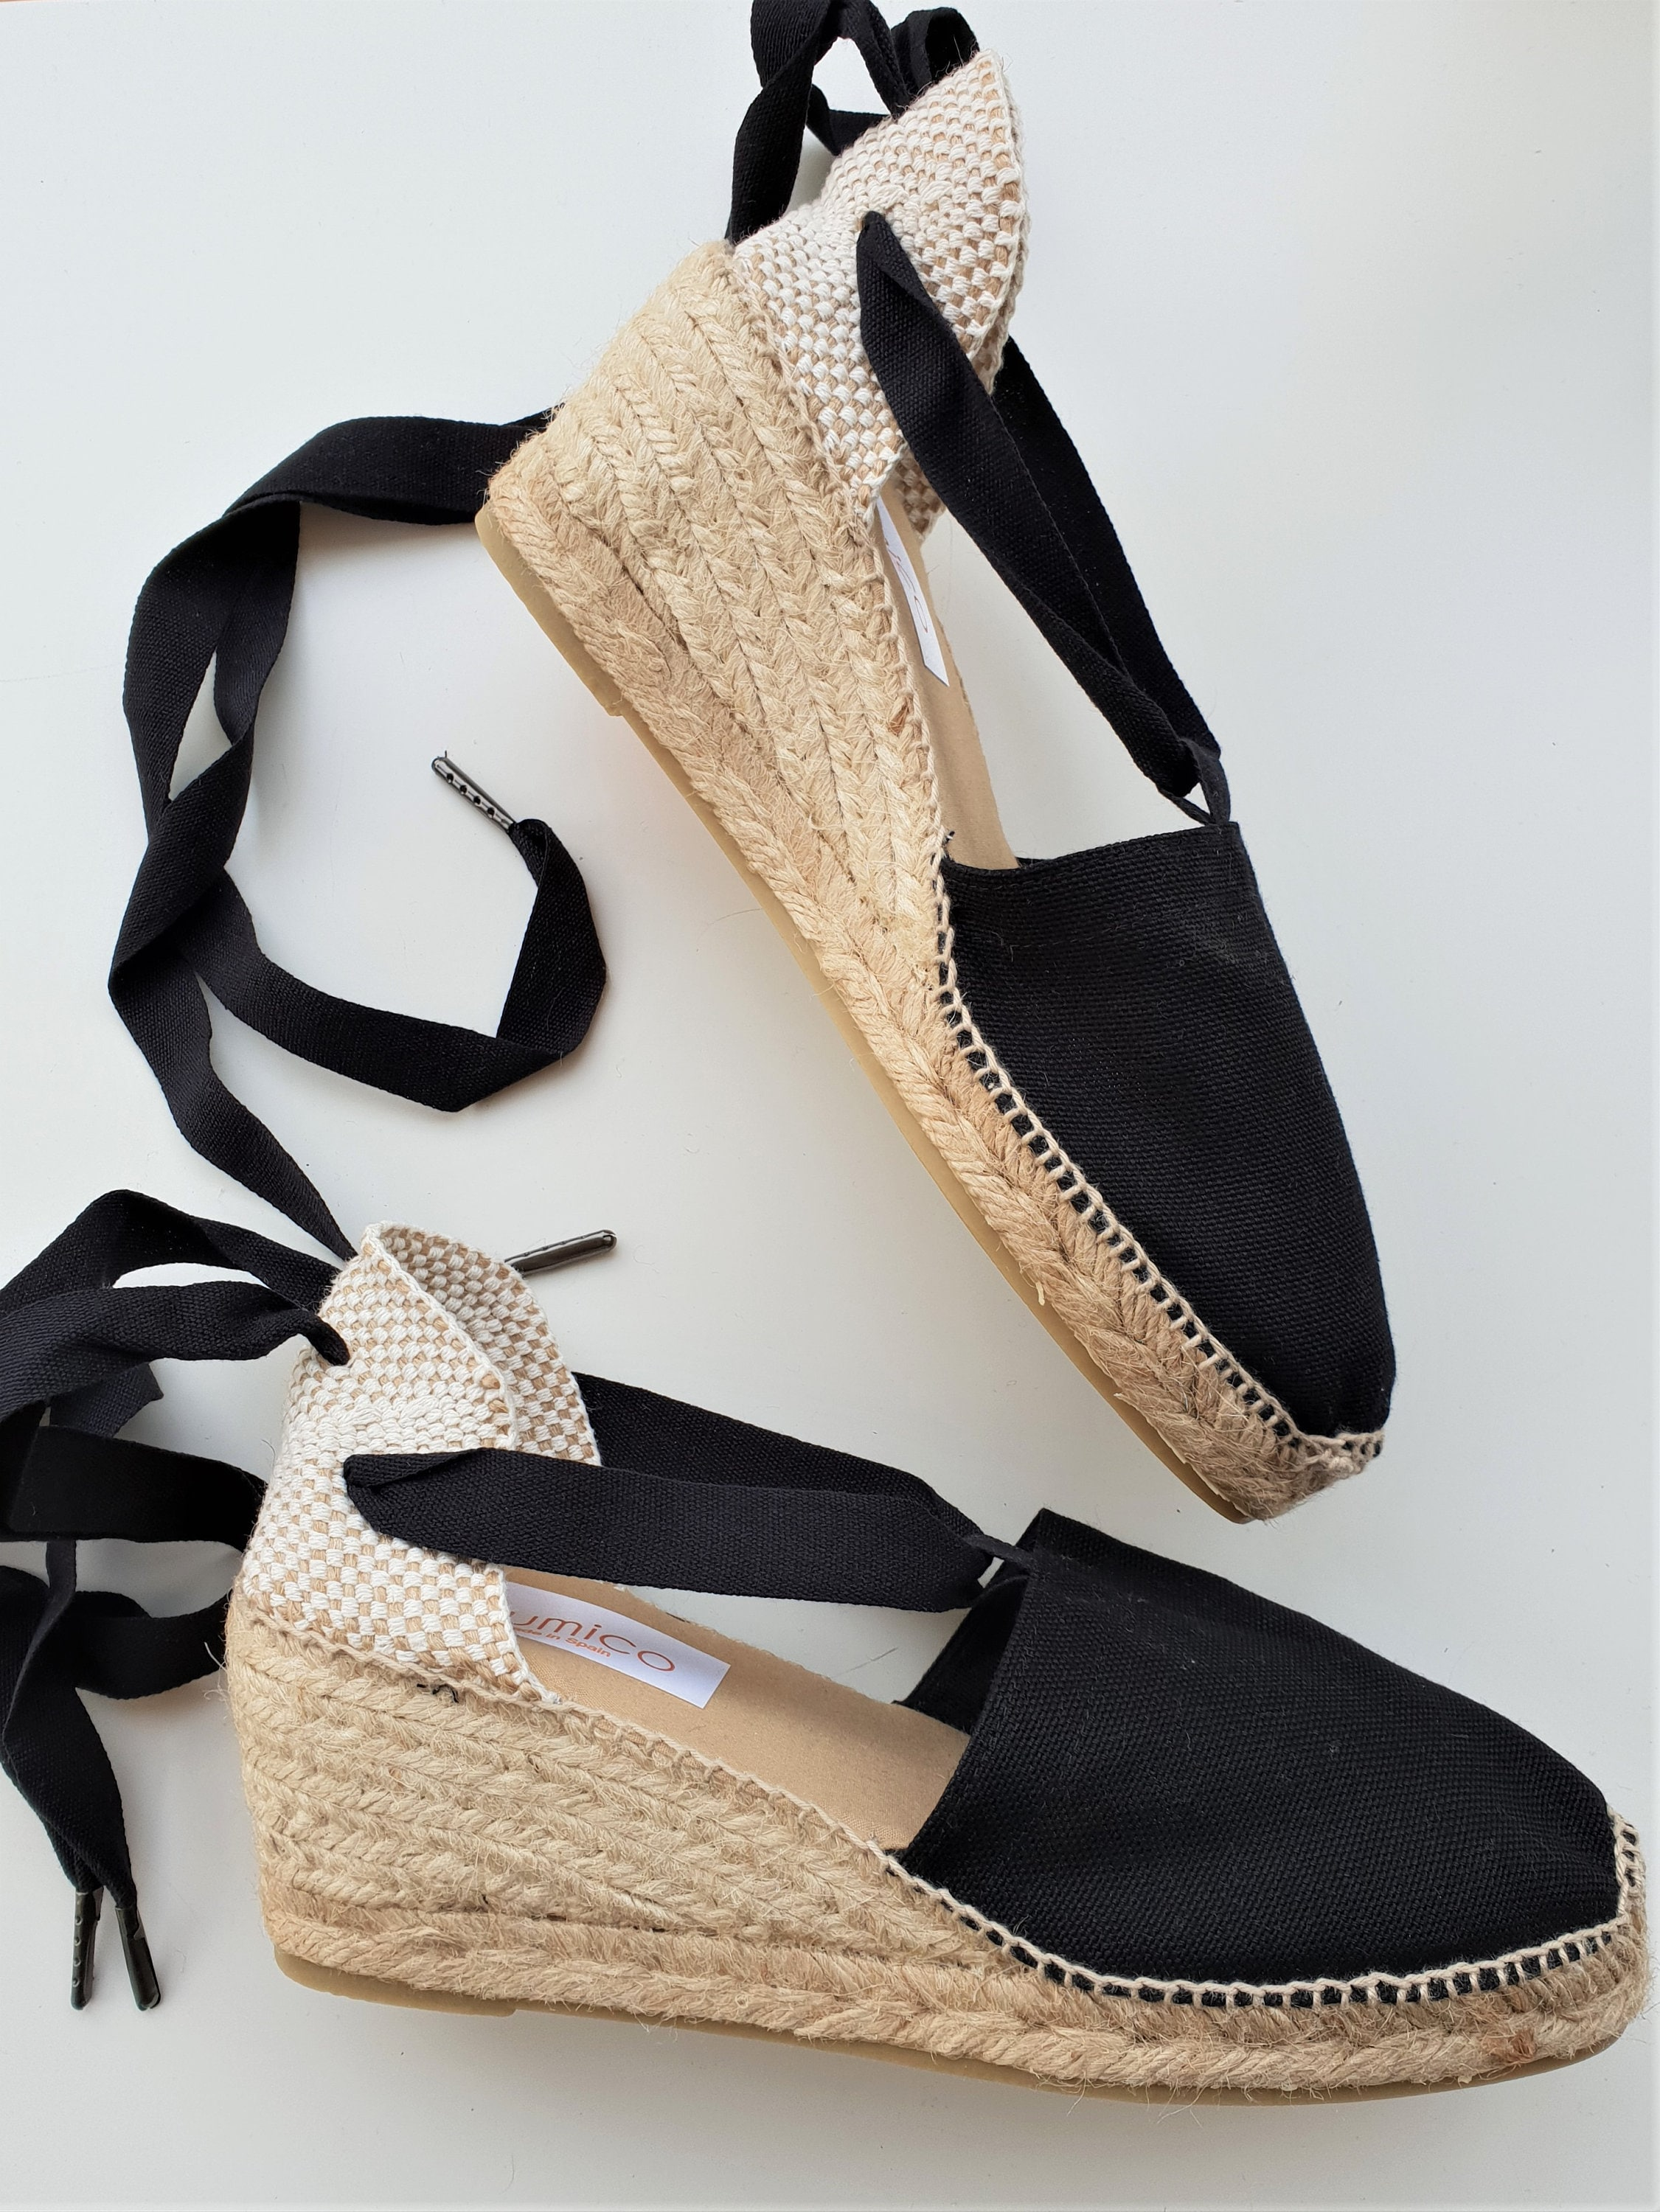 d889d676bb8 SALE  Lace up espadrille wedges - RUSTIC - visible seam BLACK - made in  spain - www.mumicospain.com